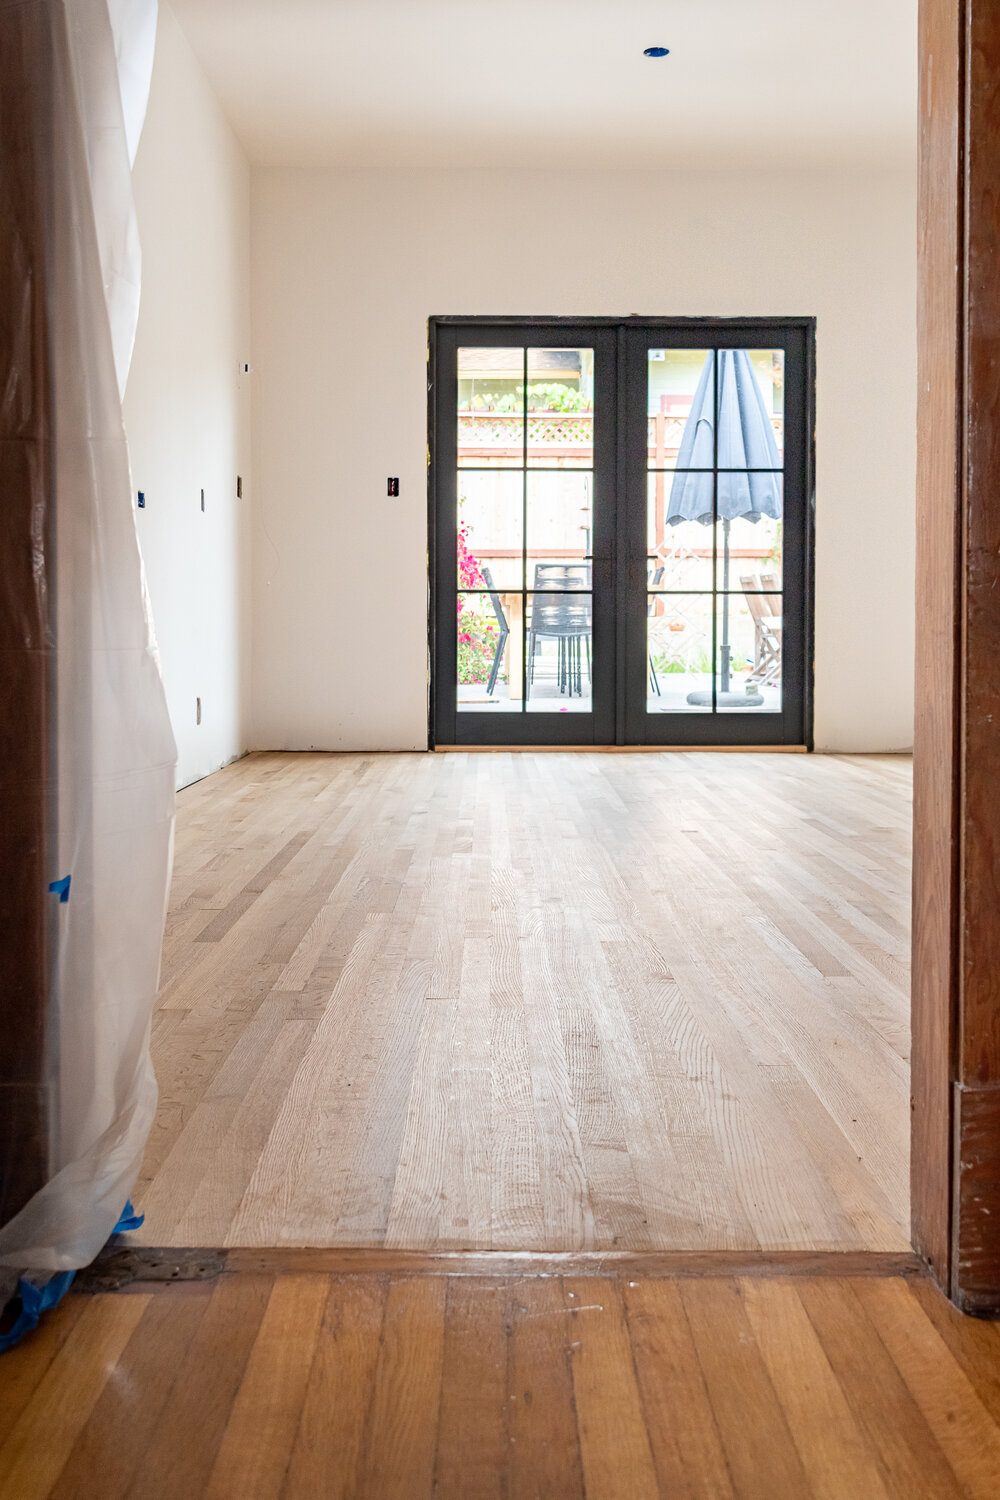 Installing New Hardwood Floors in Our Old Home — The Gold Hive